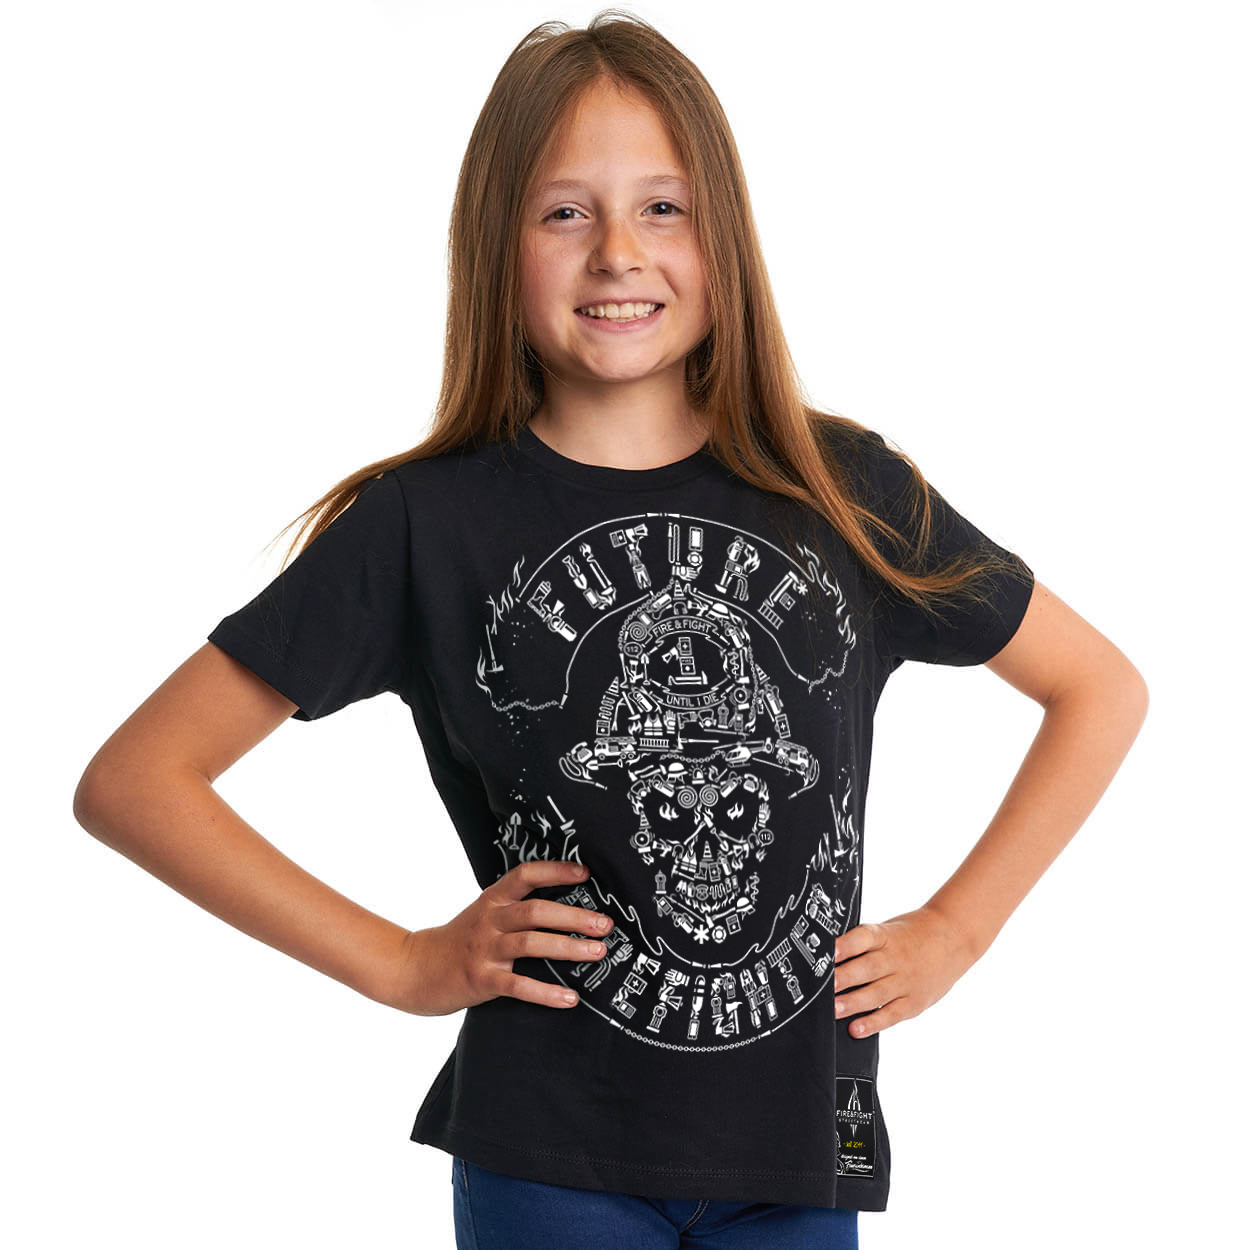 Future Firefighter - Kids T-Shirt